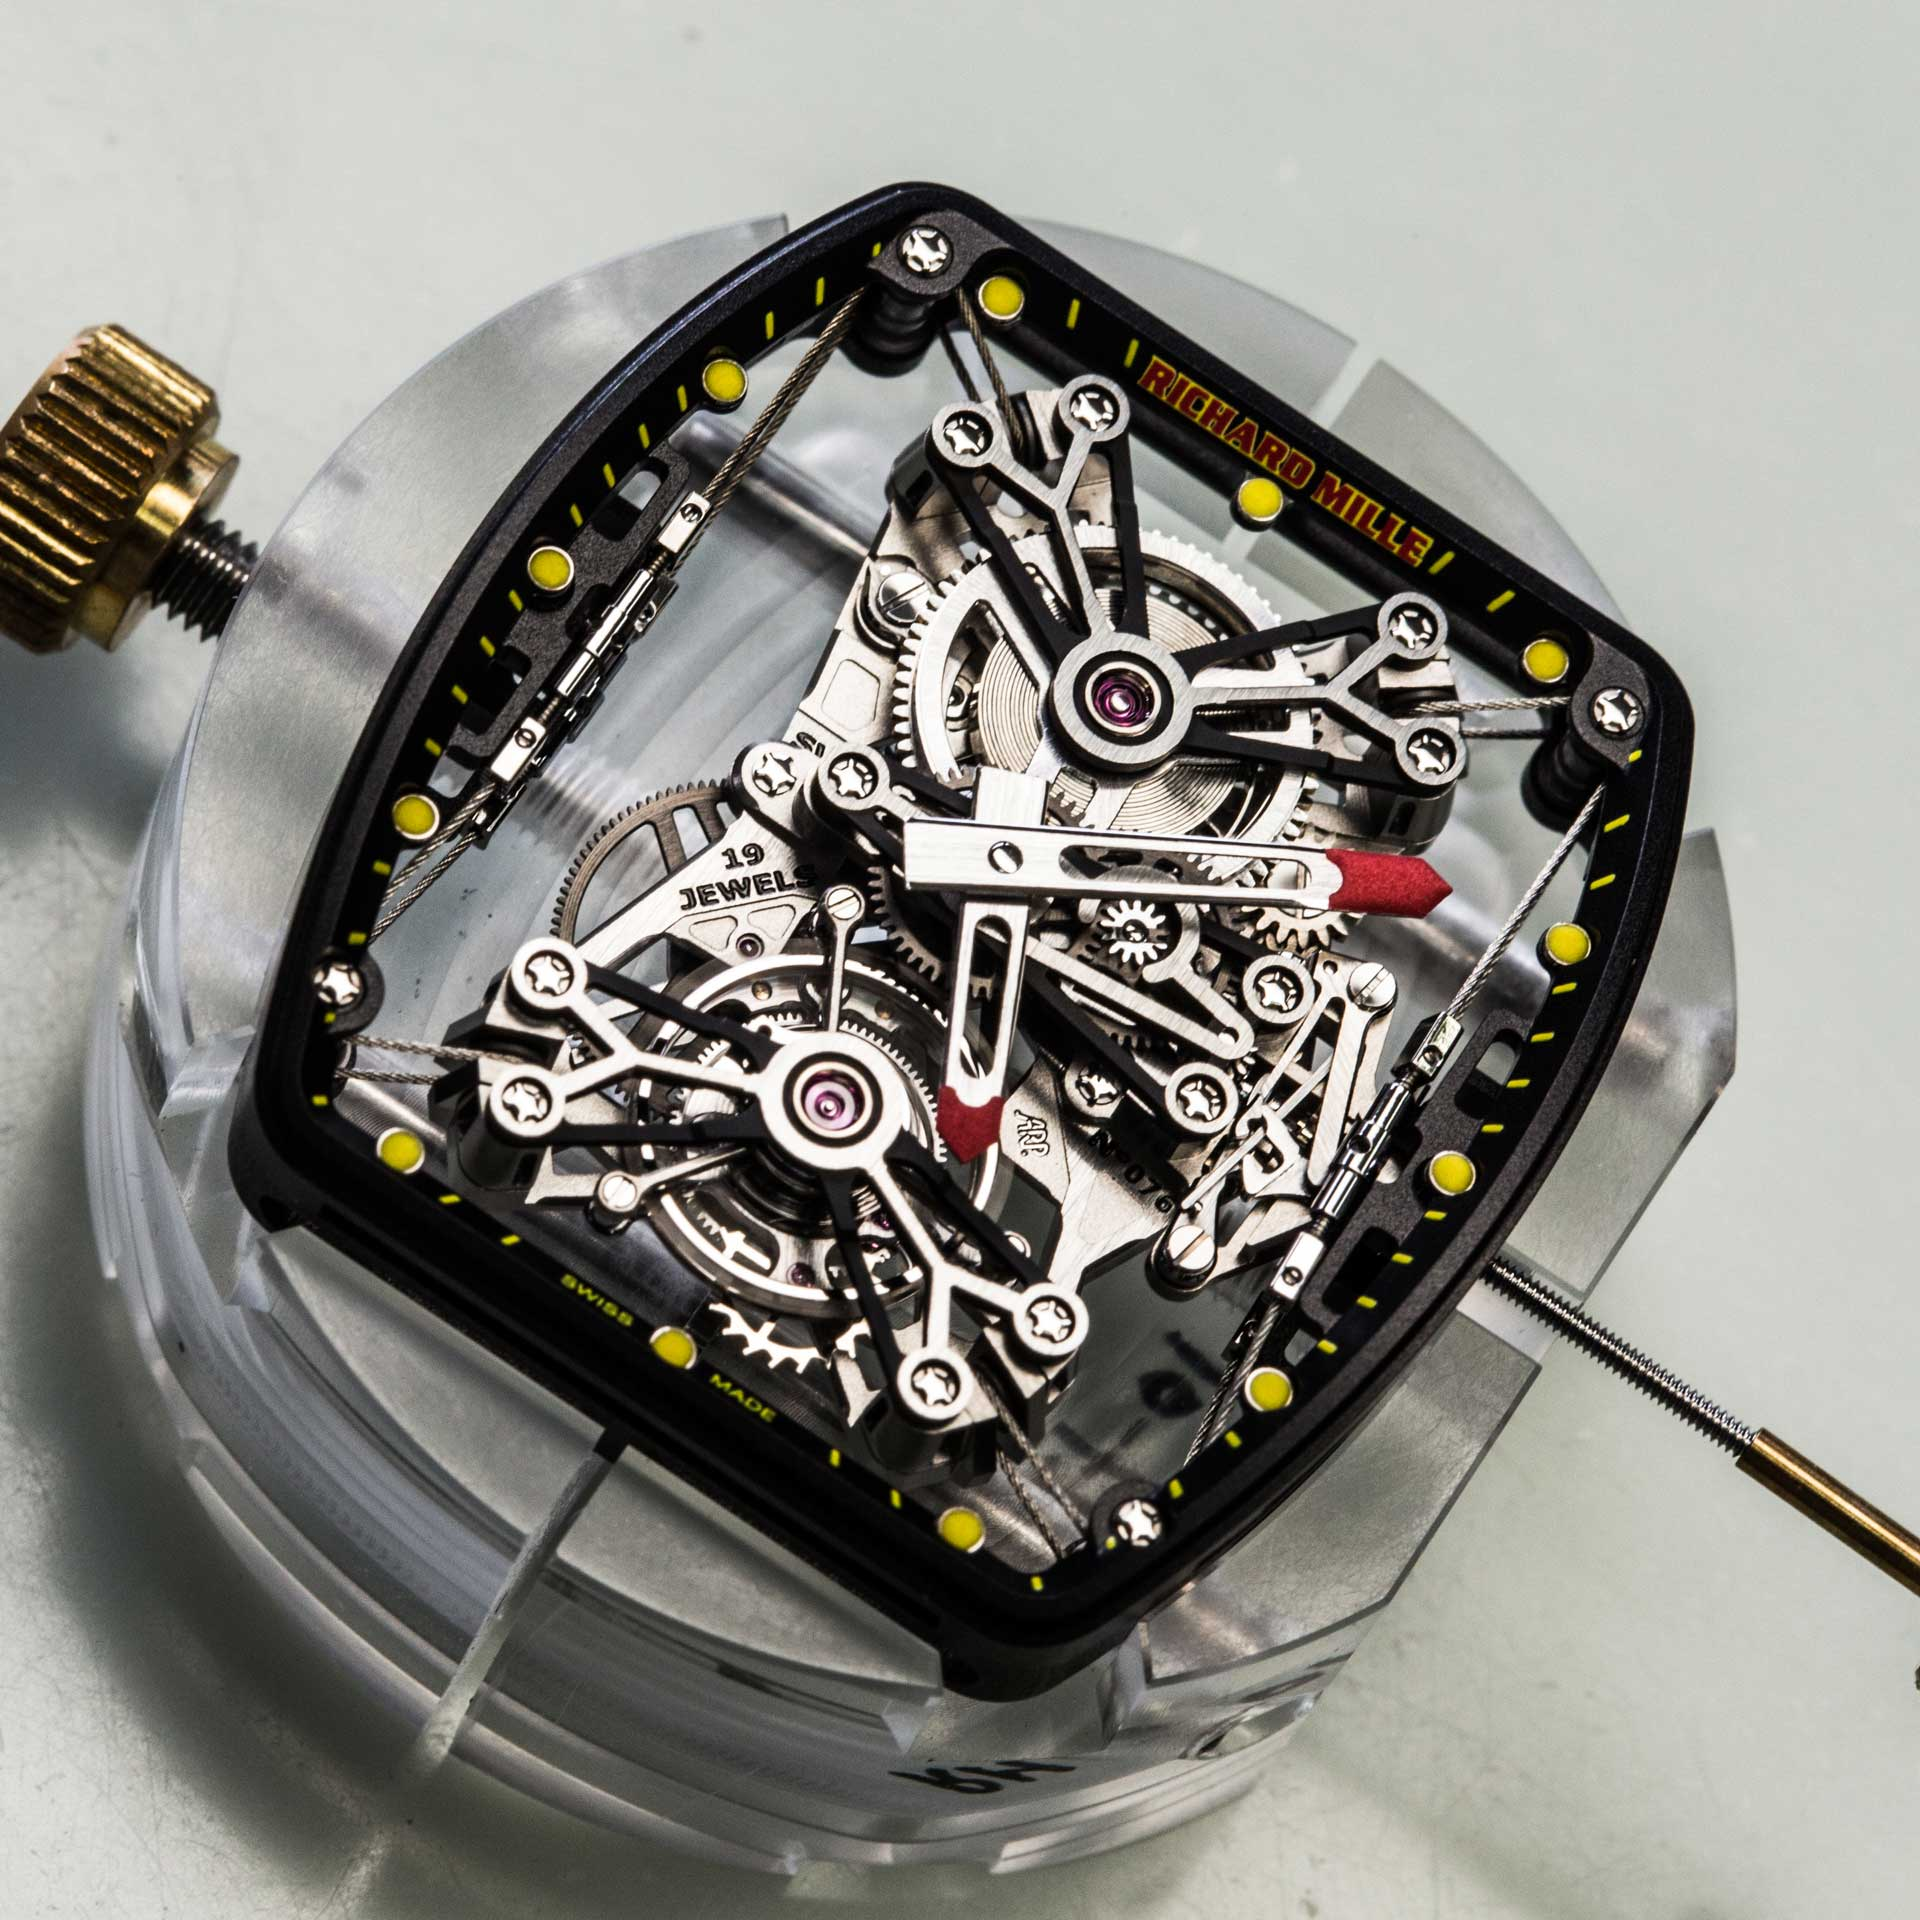 Richard Mille RM 027 movement out of its case showing the movement suspended by rod for A Collected Man London